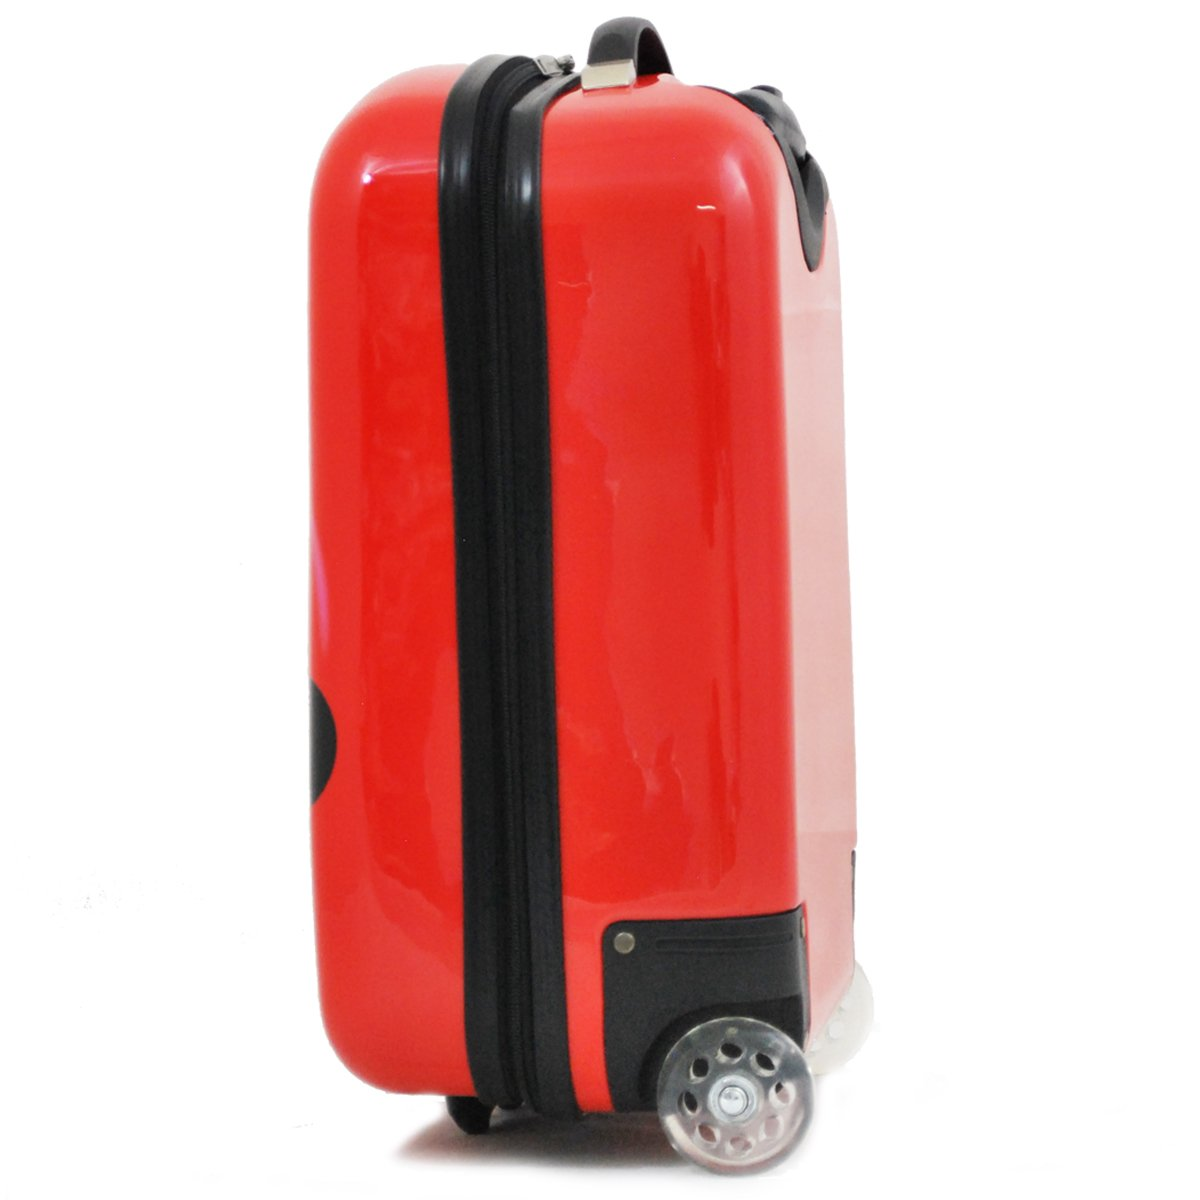 Valise cabine 2 roues MADISSON Coccinelle - Rouge